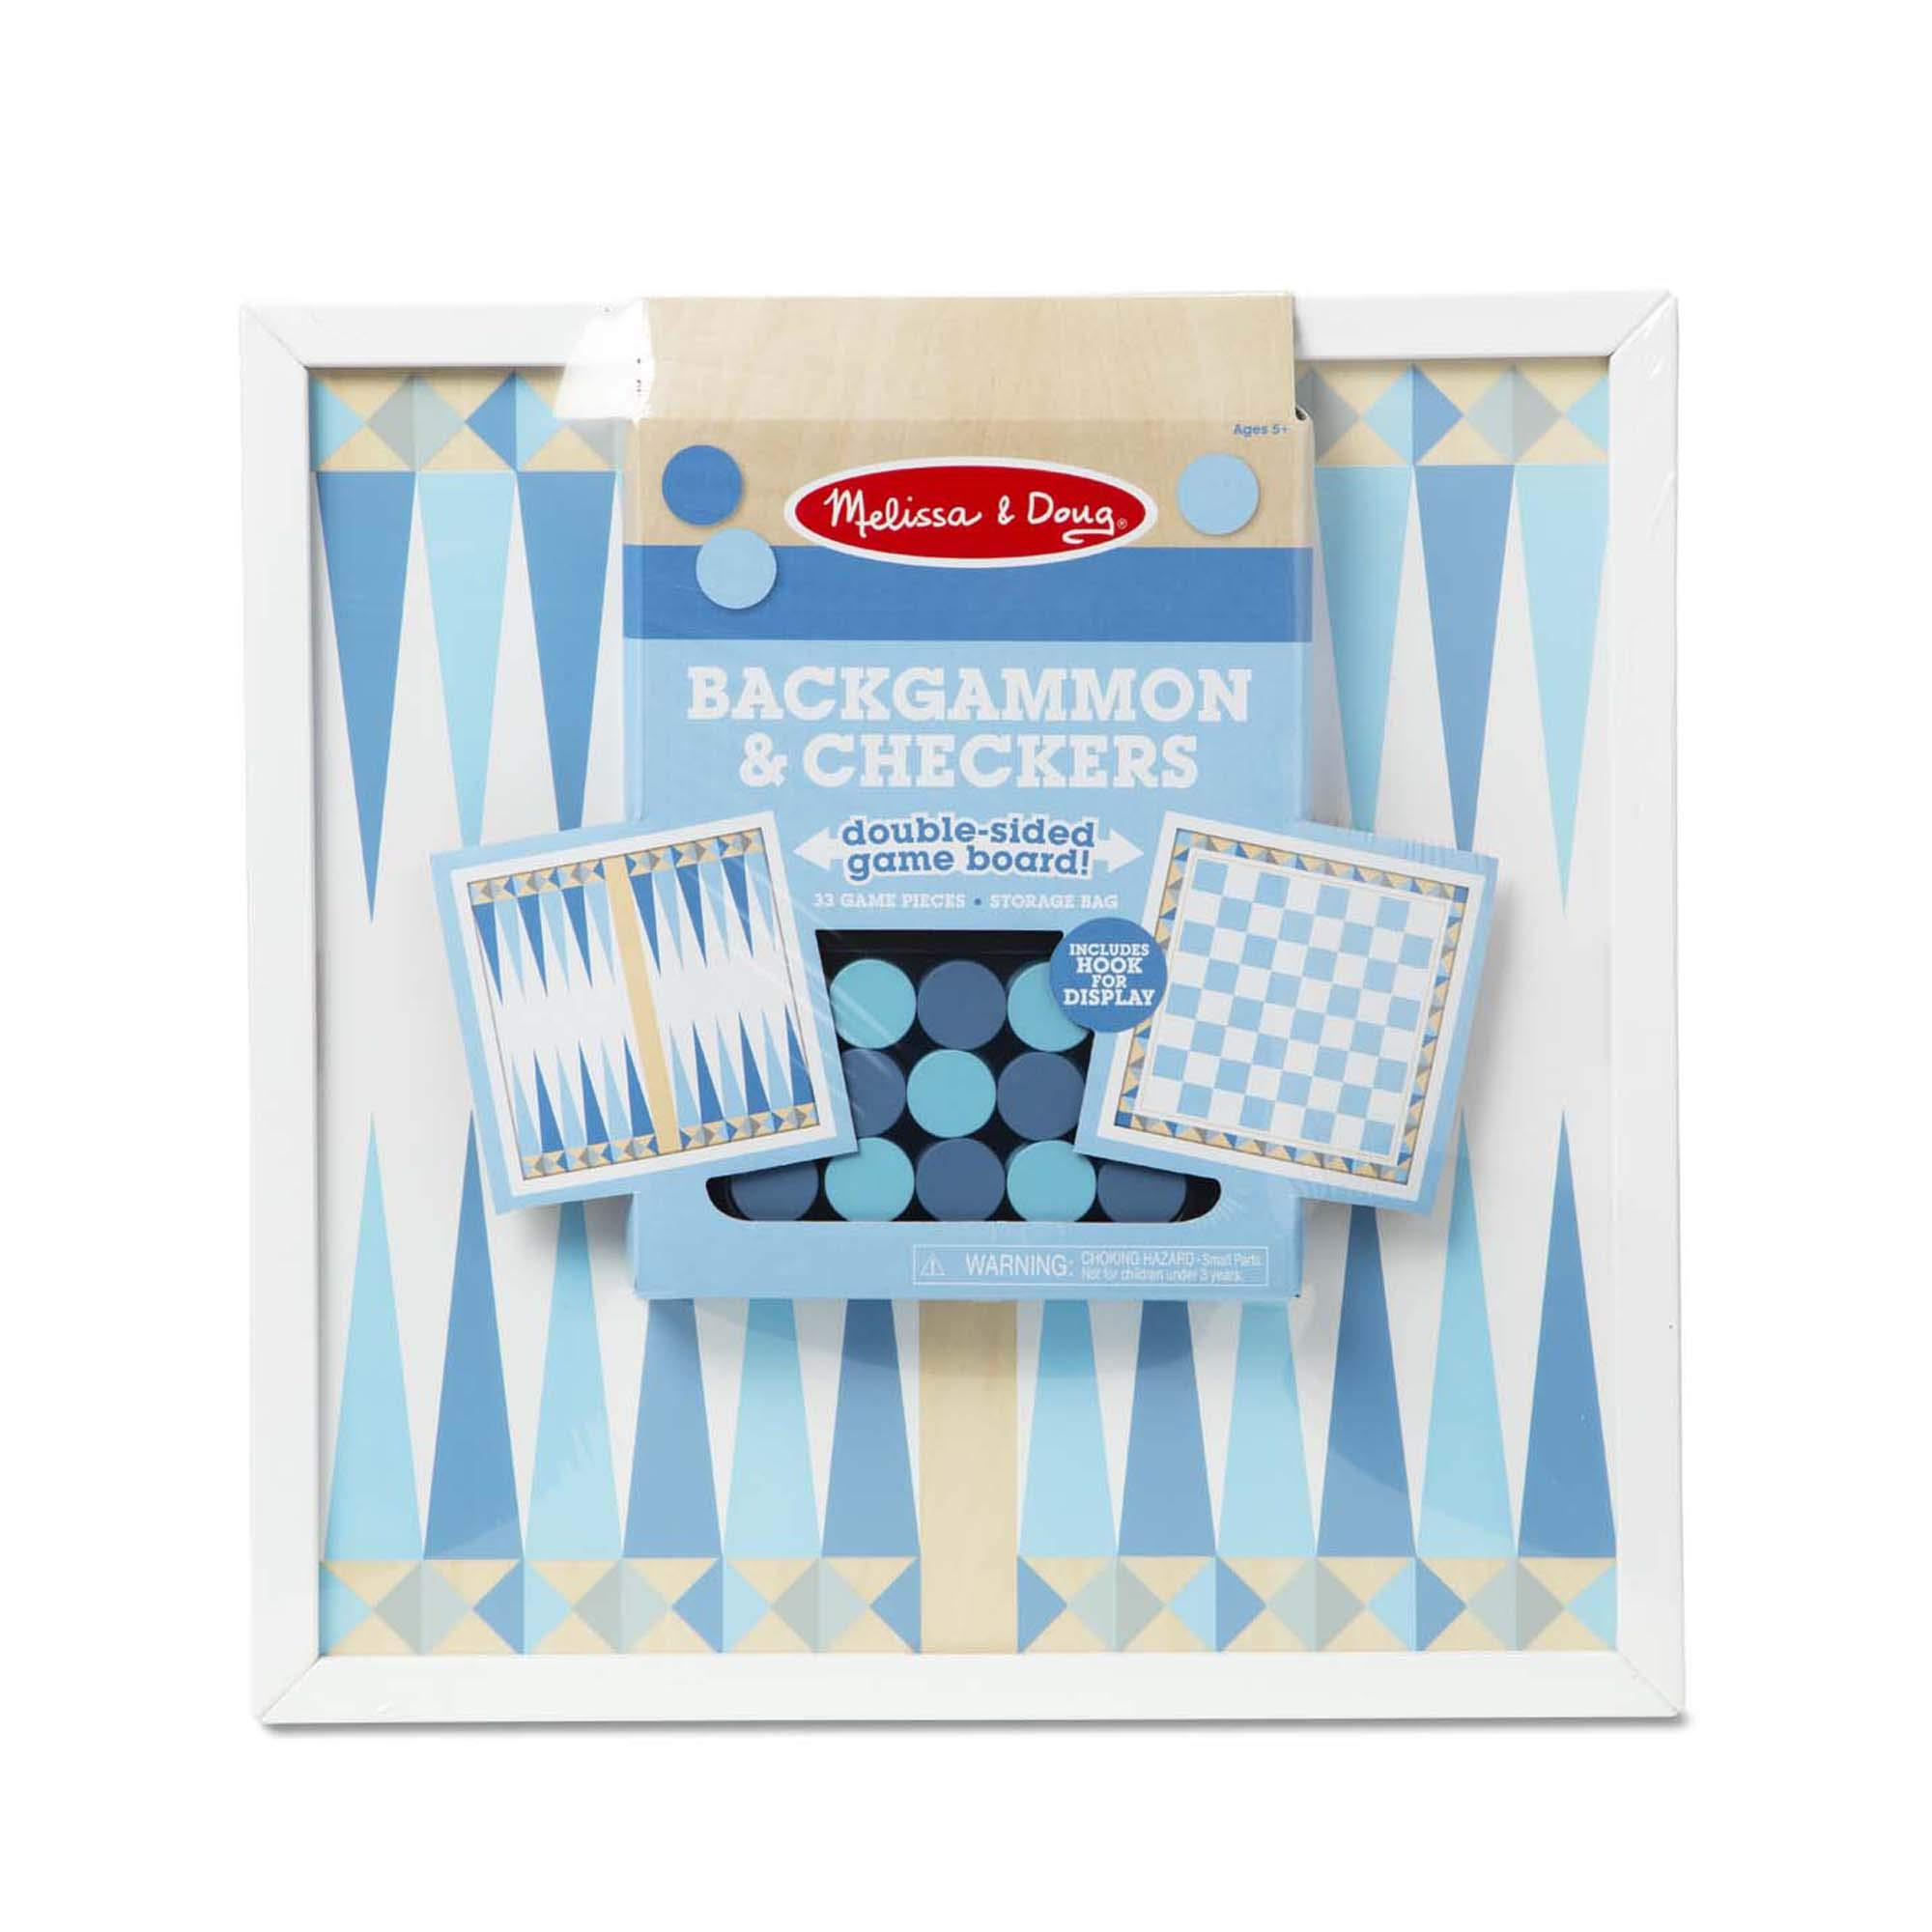 """Melissa & Doug Double-Sided Wooden Backgammon & Checkers Board Game - Blue (33 Game Pieces, 17.5"""" W x 17.5"""" L x 1.5"""" D), Great Gift for Girls and Boys - Best for 6, 7, 8 Year Olds and Up"""